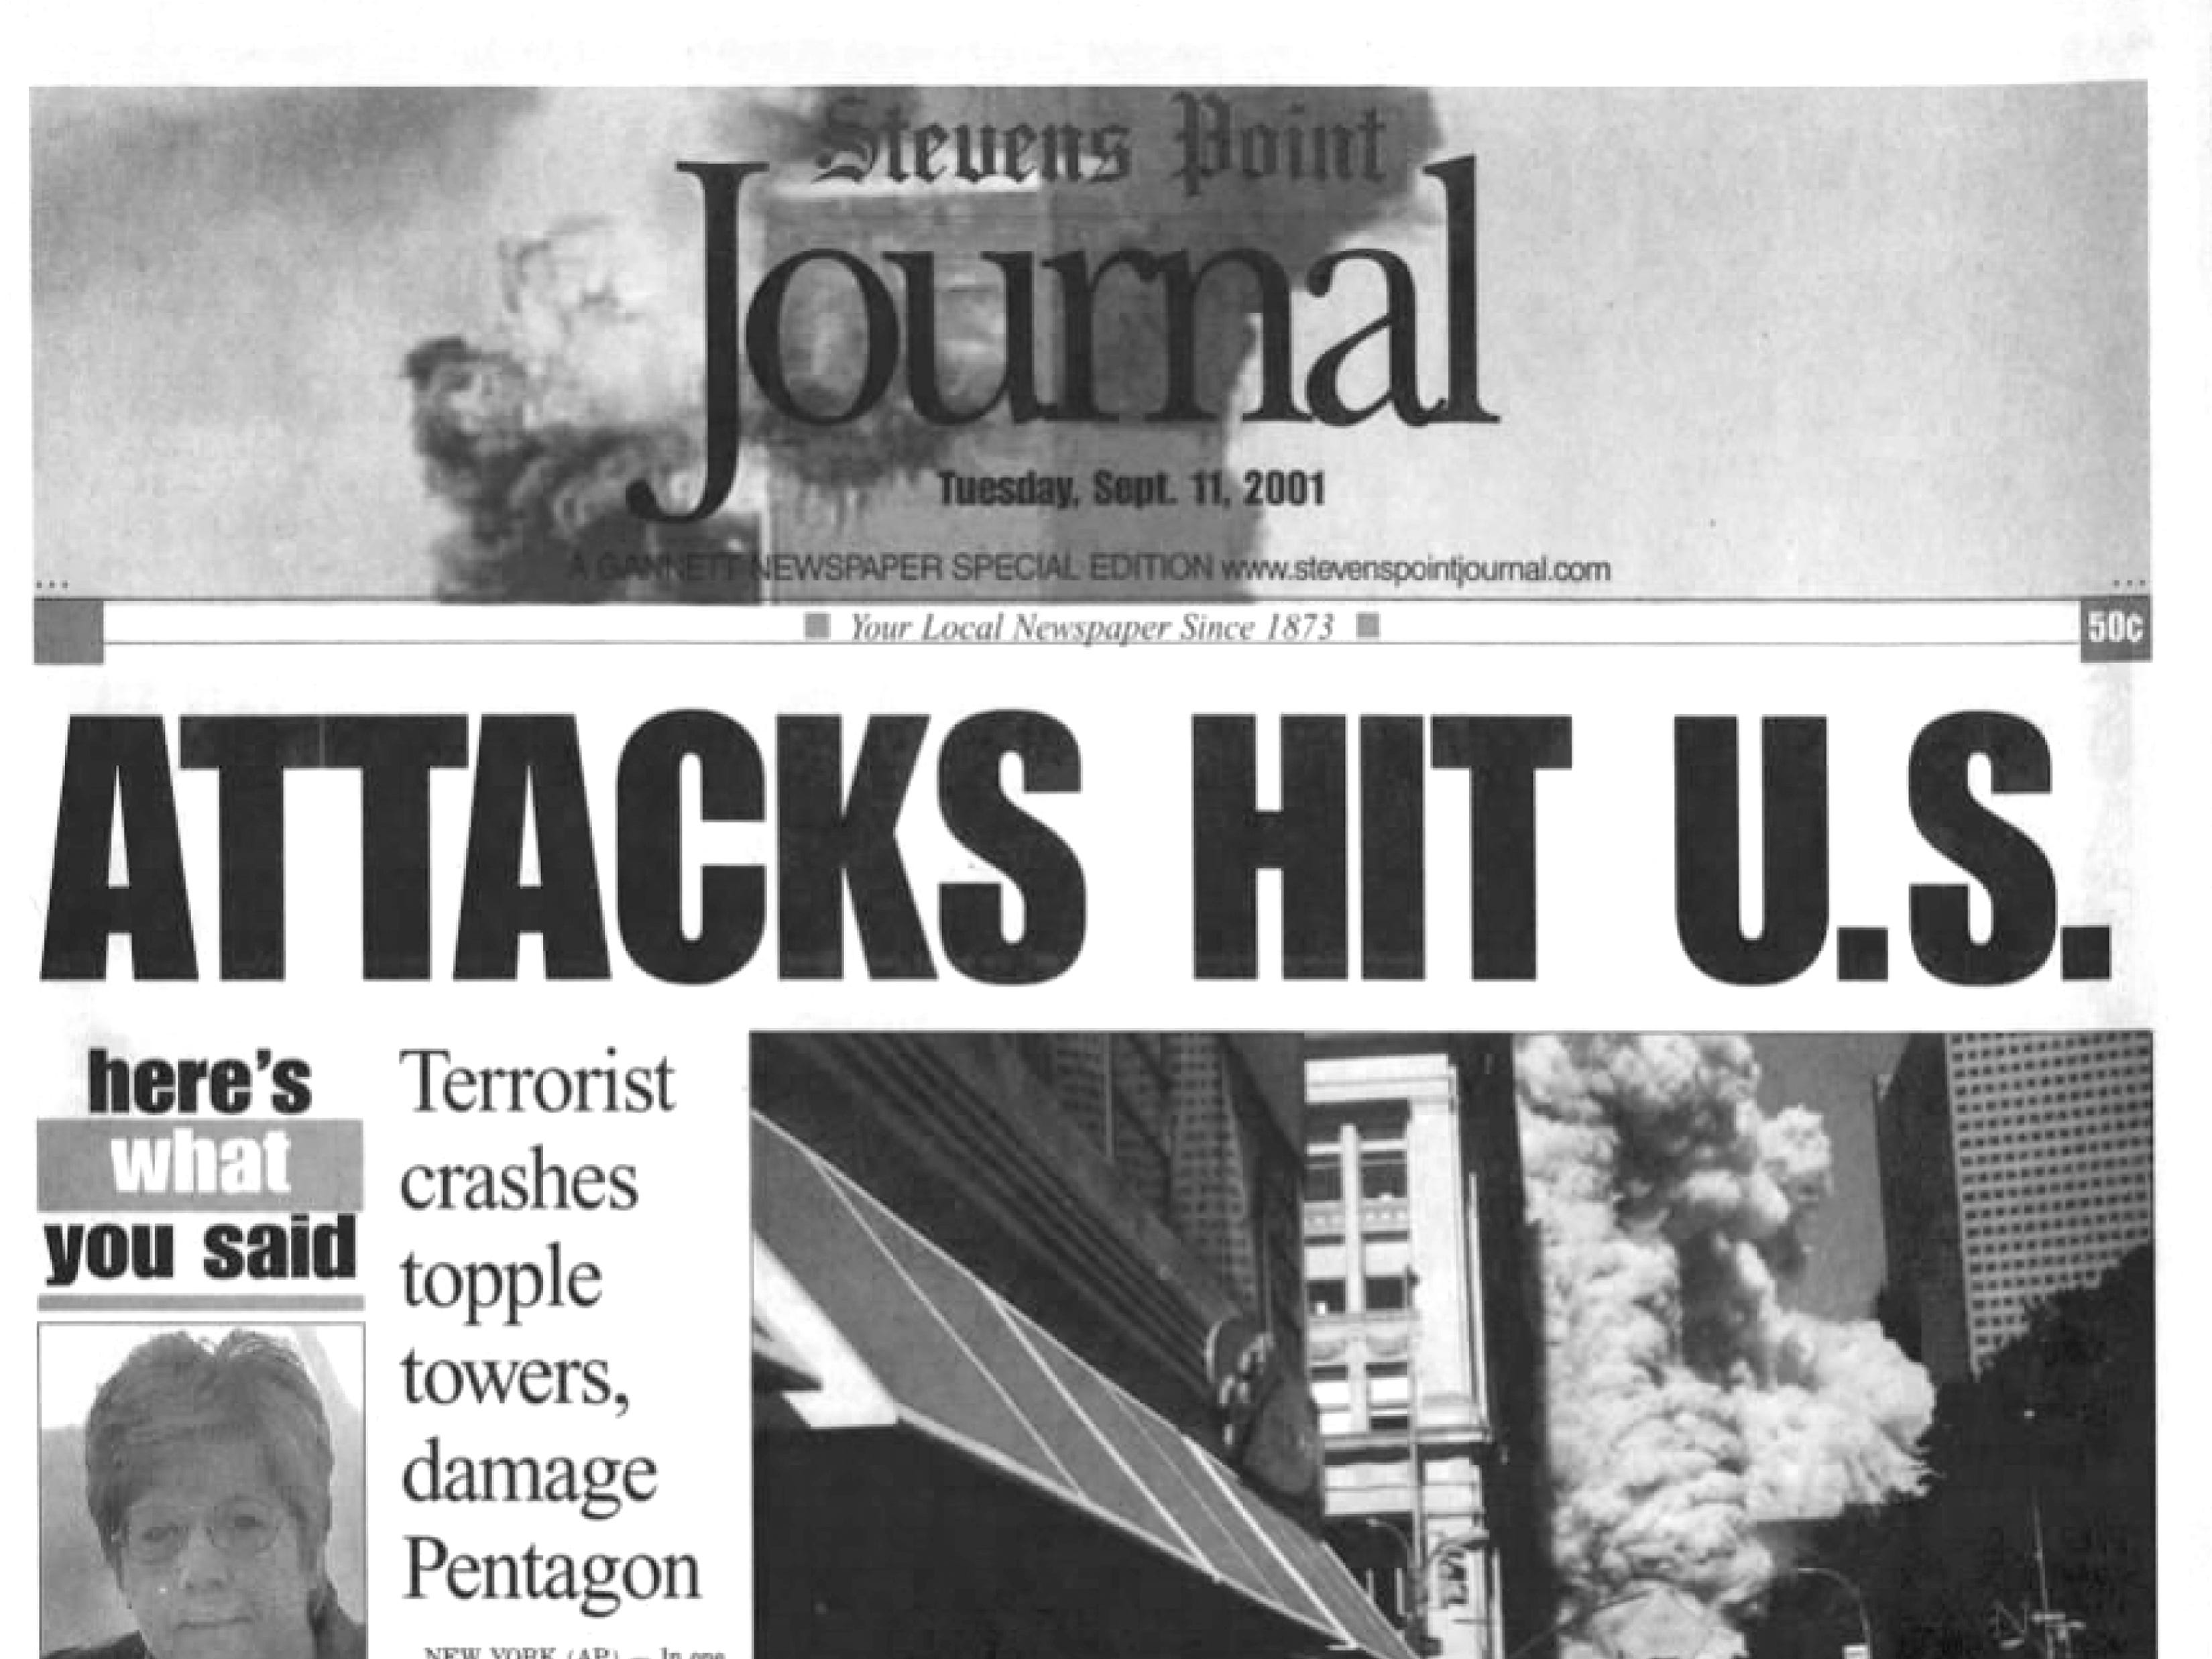 Front page of The Stevens Point Journal on Sept. 12, 2001